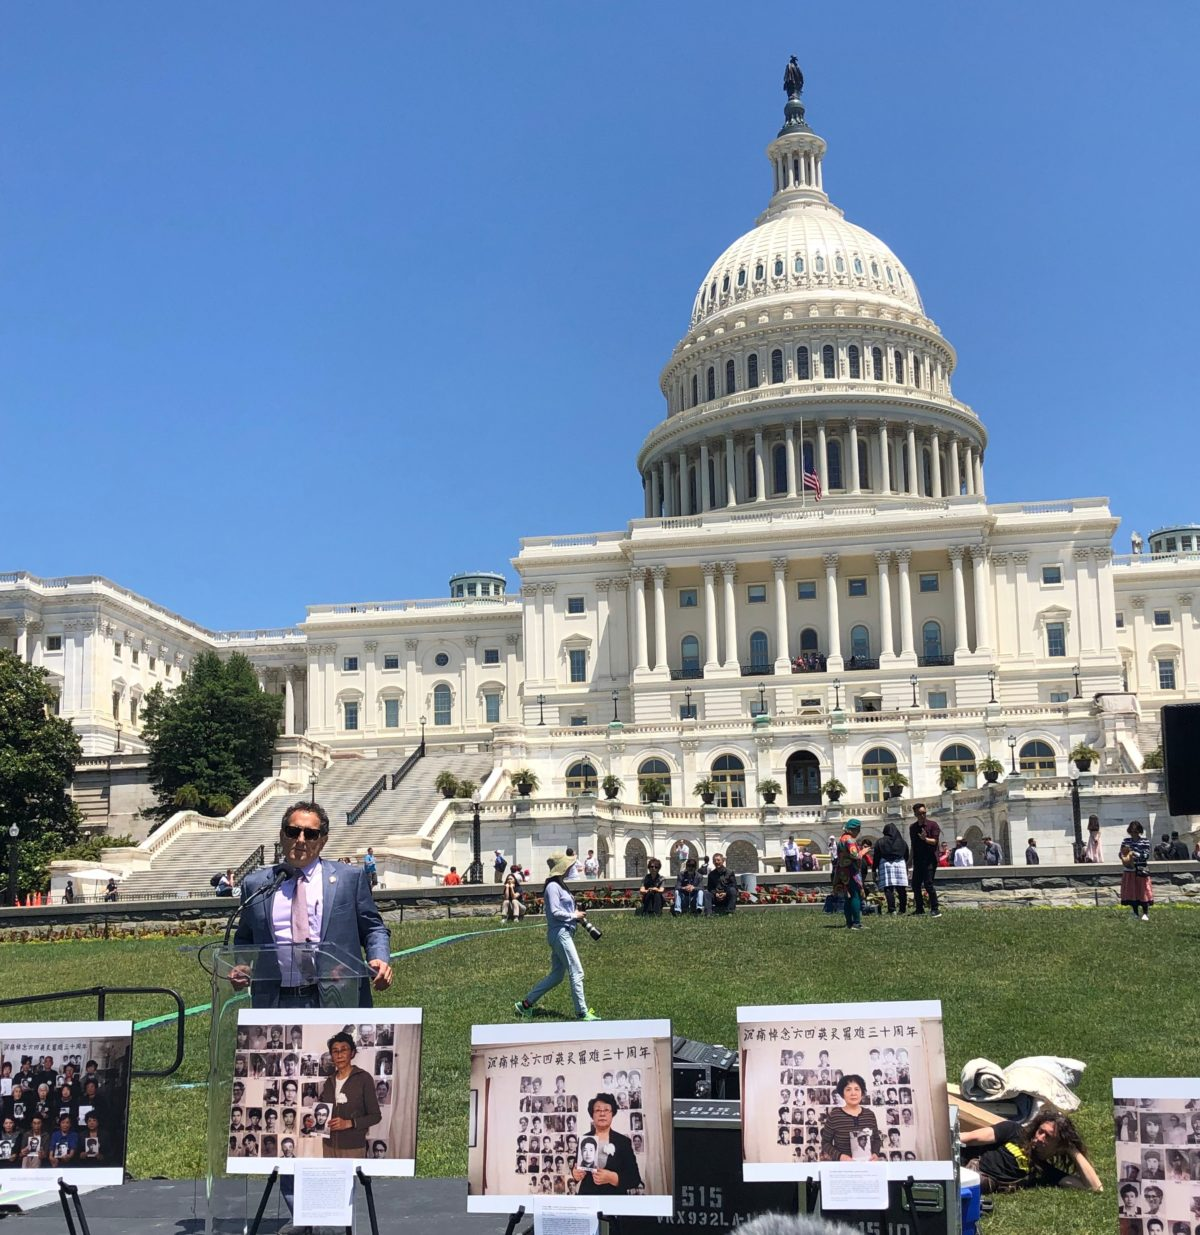 Rep. Andy Levin speaks from behind portraits of relatives holding photos of loved ones killed in Tiananmen Square at a rally commemorating the 30th anniversary of the Massacre in Washington, D.C., on June 4, 2019. Photo by Evie Fordham